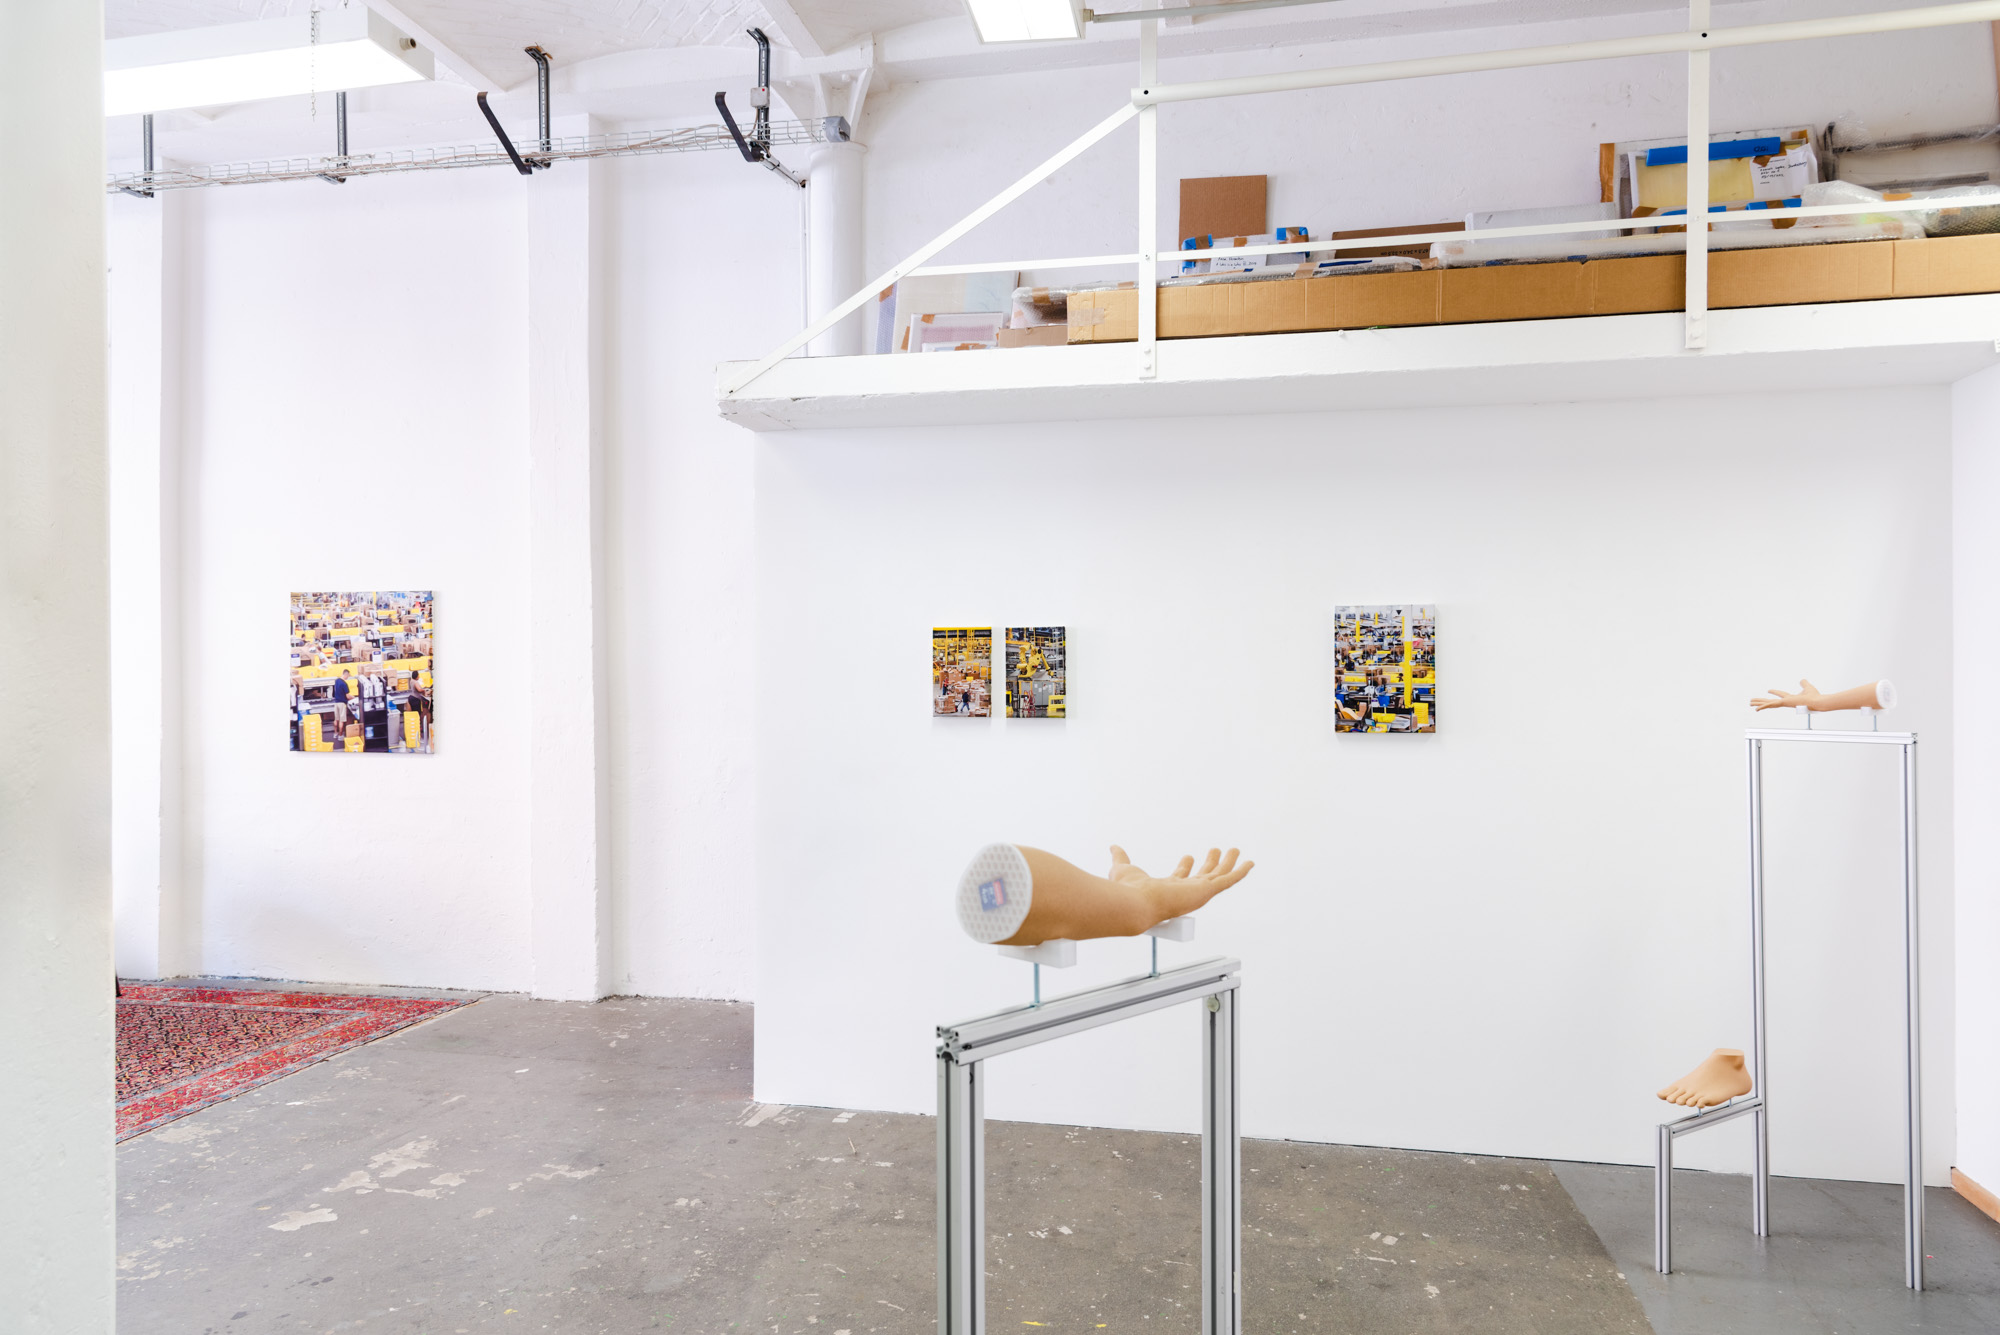 Bob_Bicknell_Knight_It_is_Always_day_one_exhibition_view_17_Photo_Luke_Marshall_Johnson